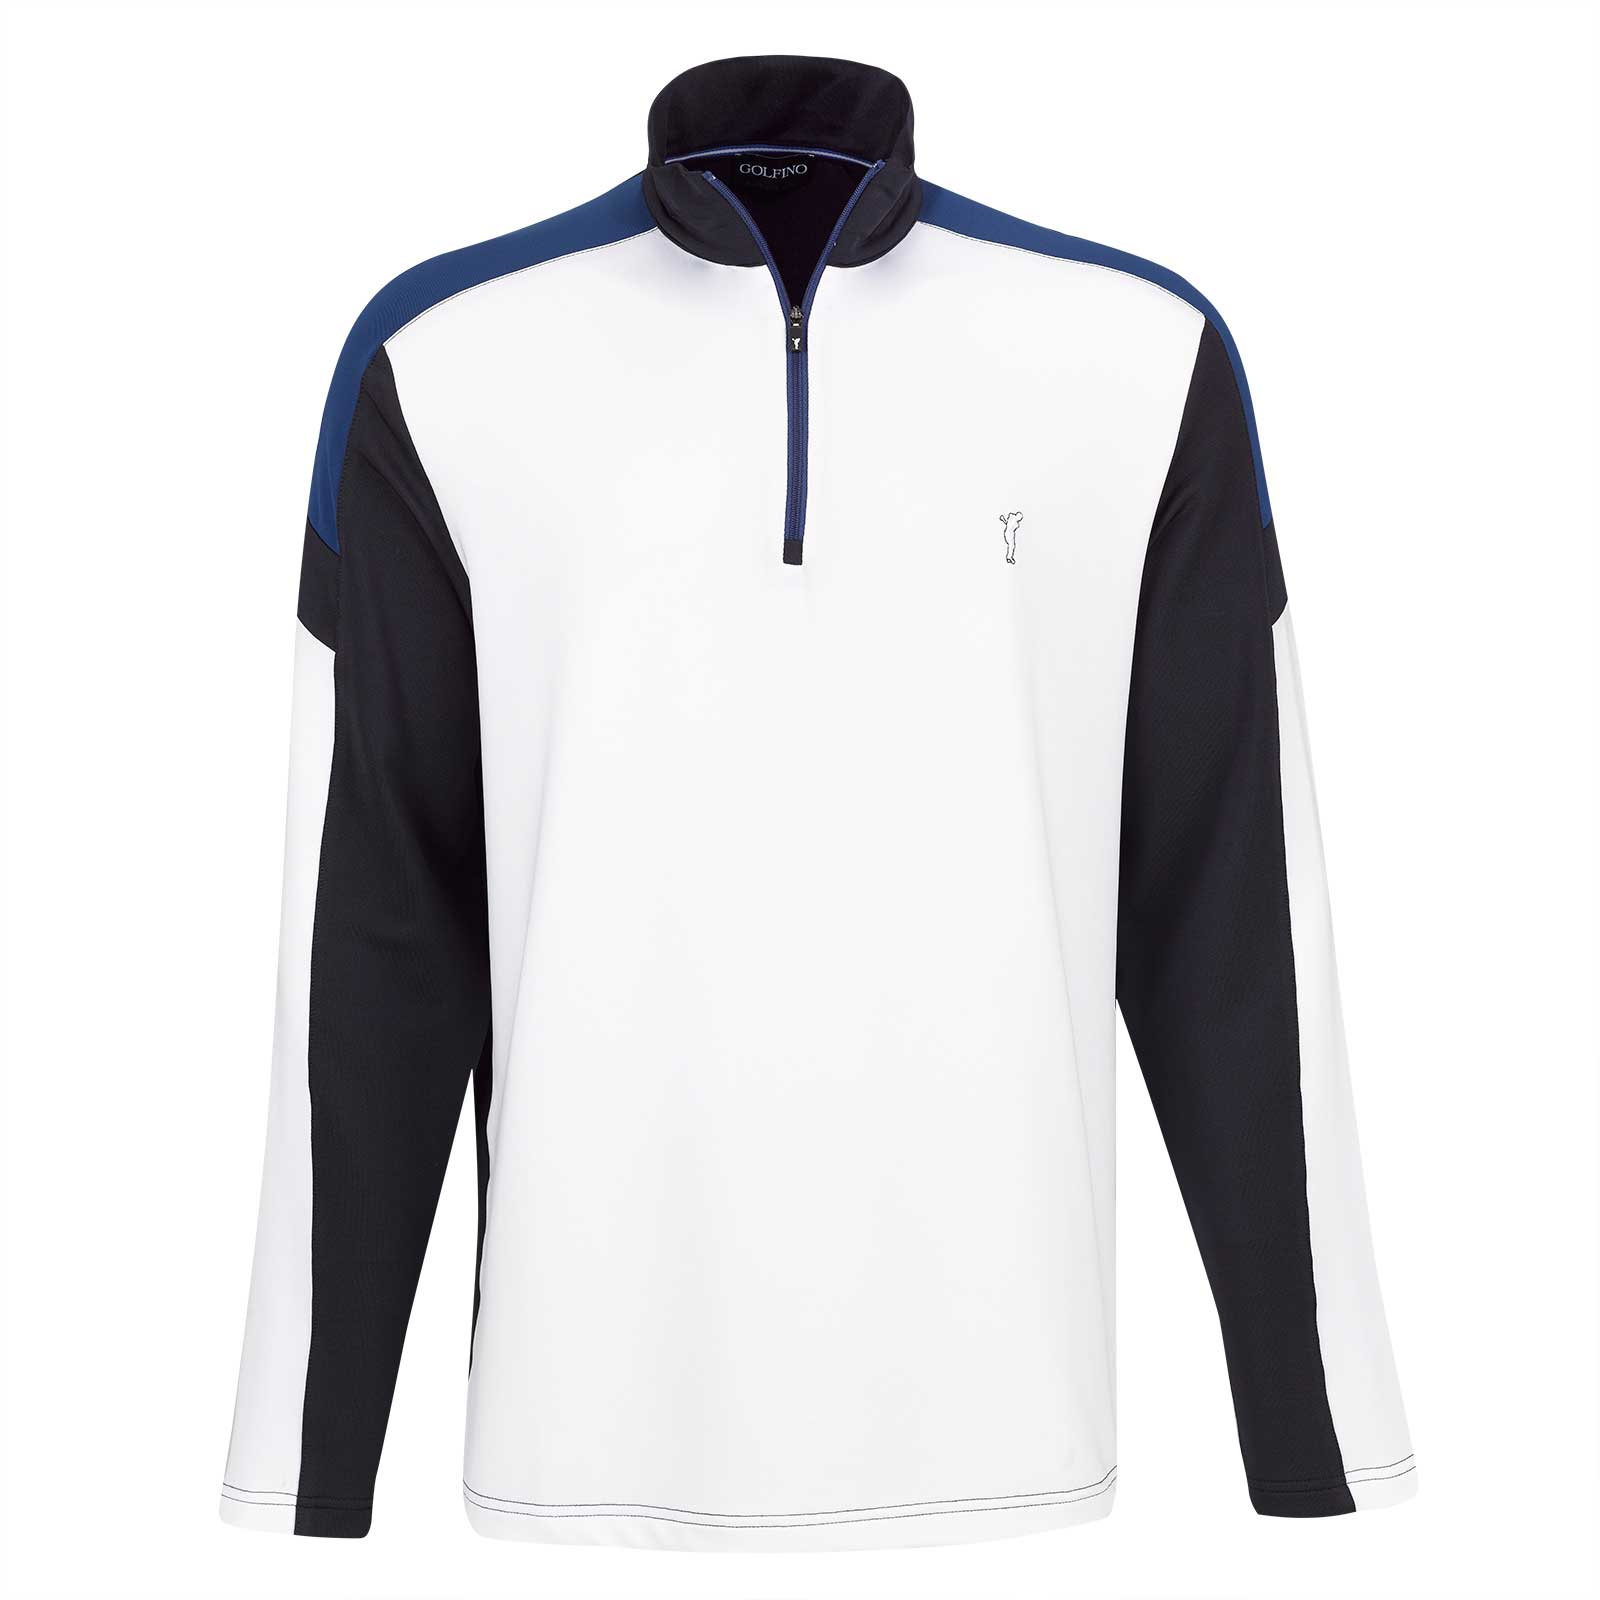 Men's thermal Stretch golf base layer in Pro-Look